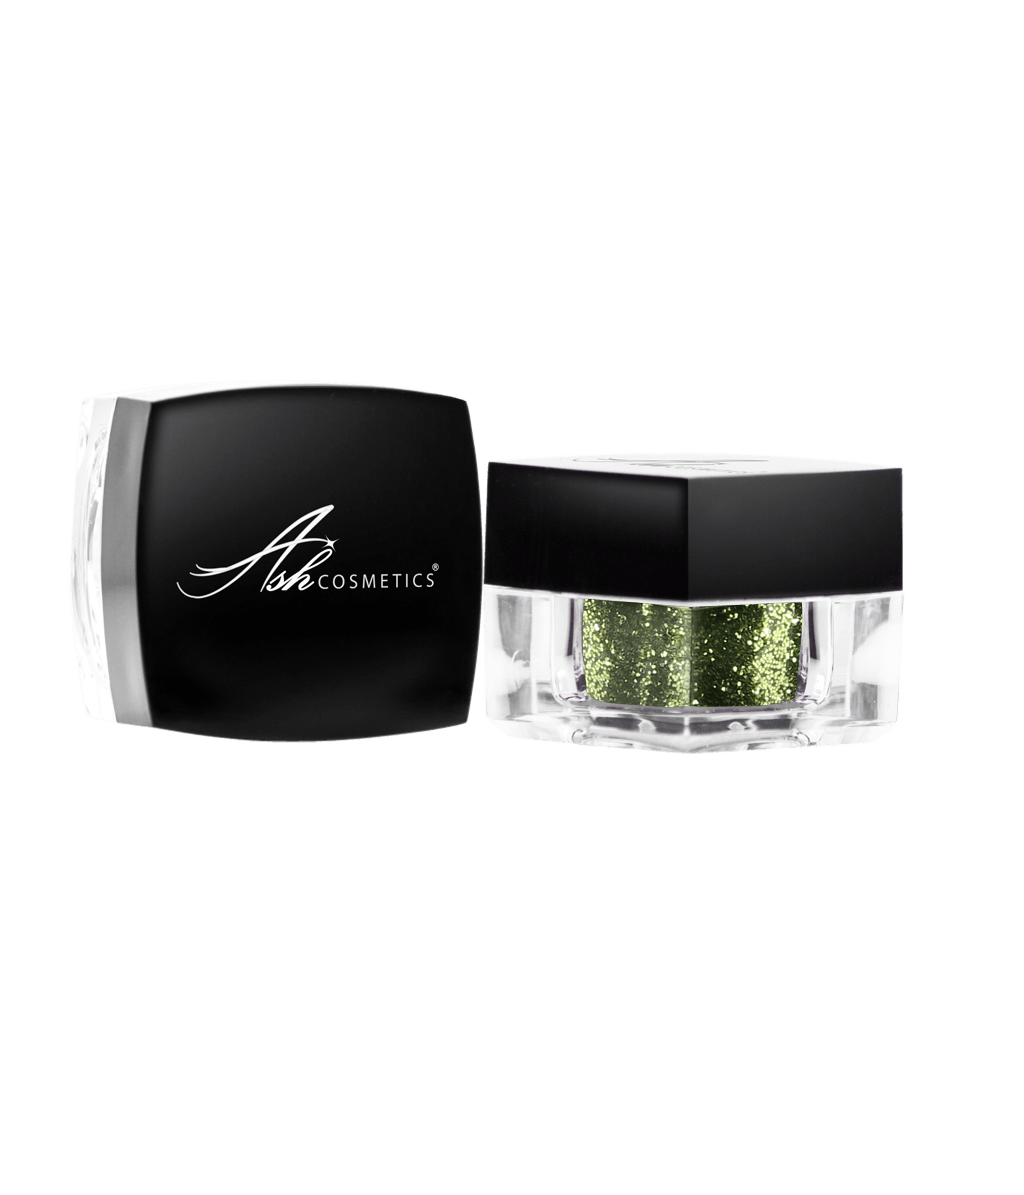 Glitter Eyeshadow Atlantis Green - Ashcosmetics